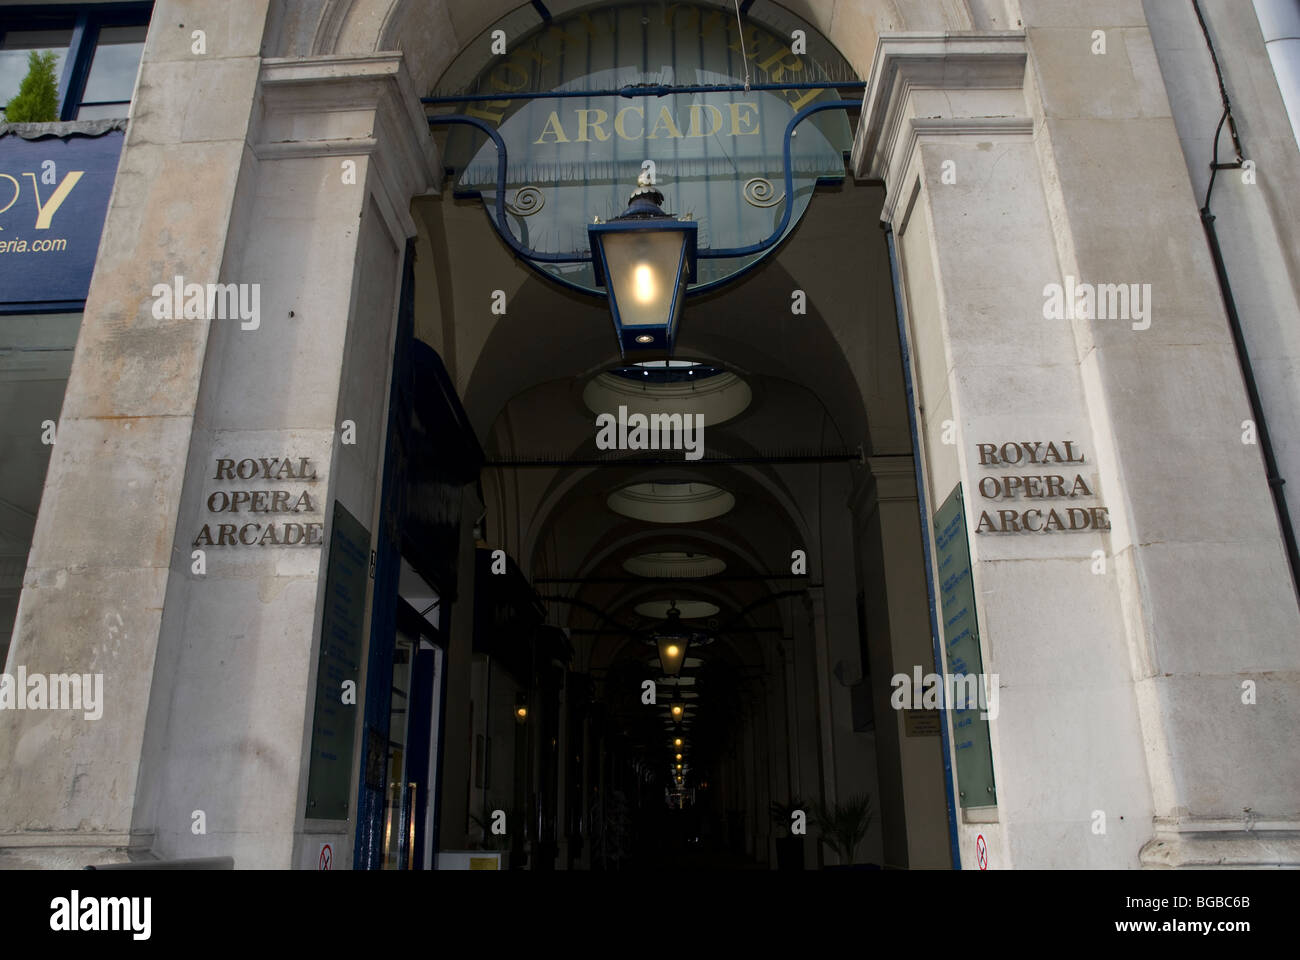 Entrance to the Royal Opera Arcade off the Haymarket, London W1 UK Stock Photo